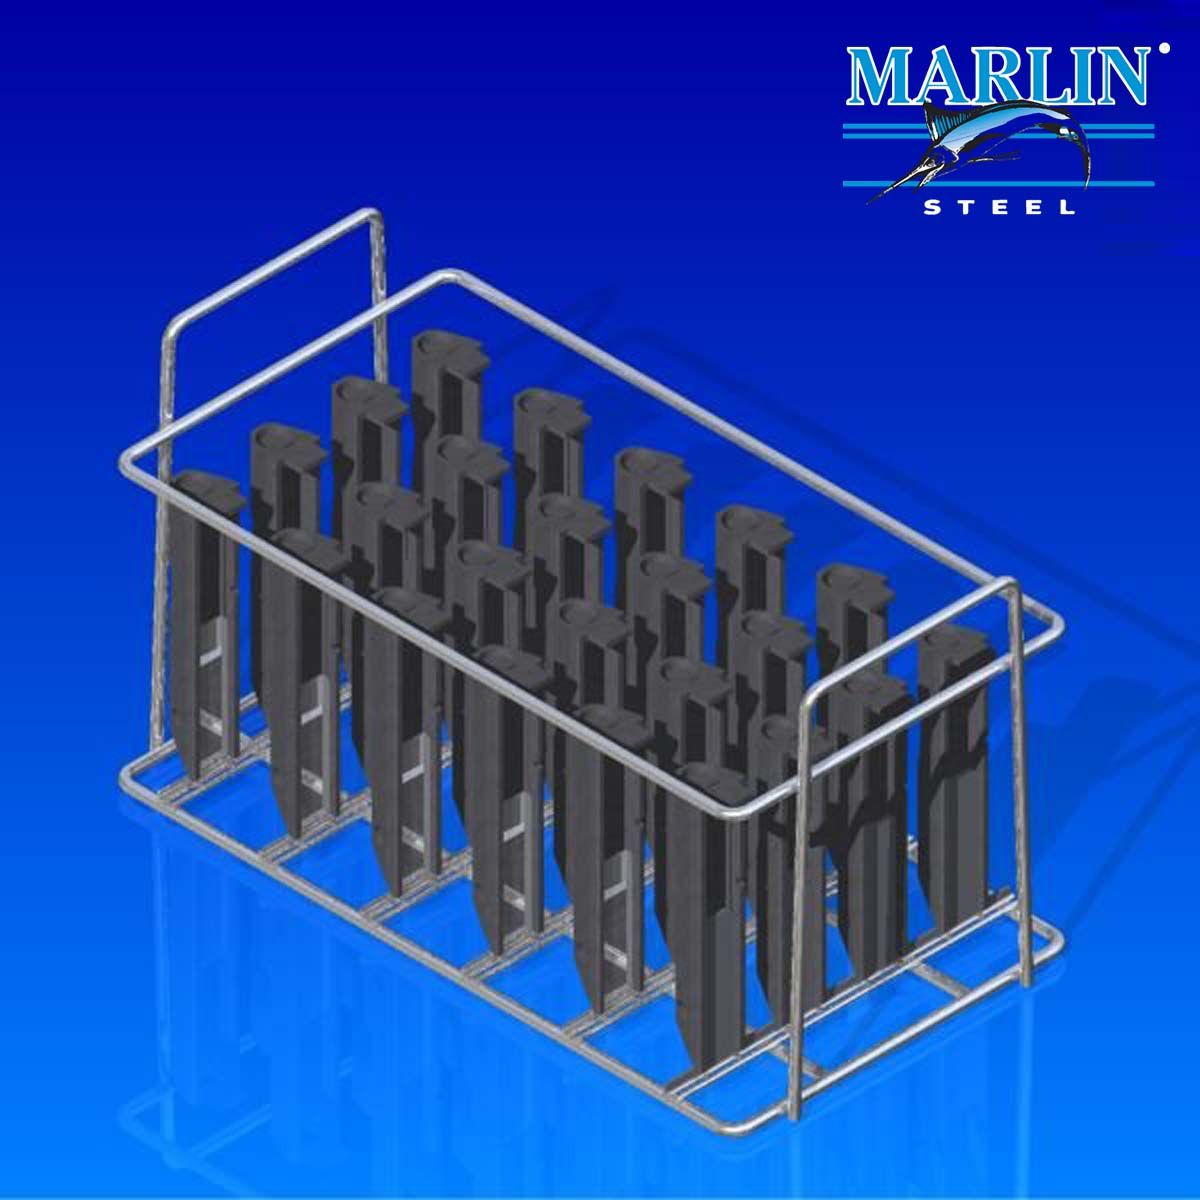 Marlin Steel Wire Basket with Dividers 75006